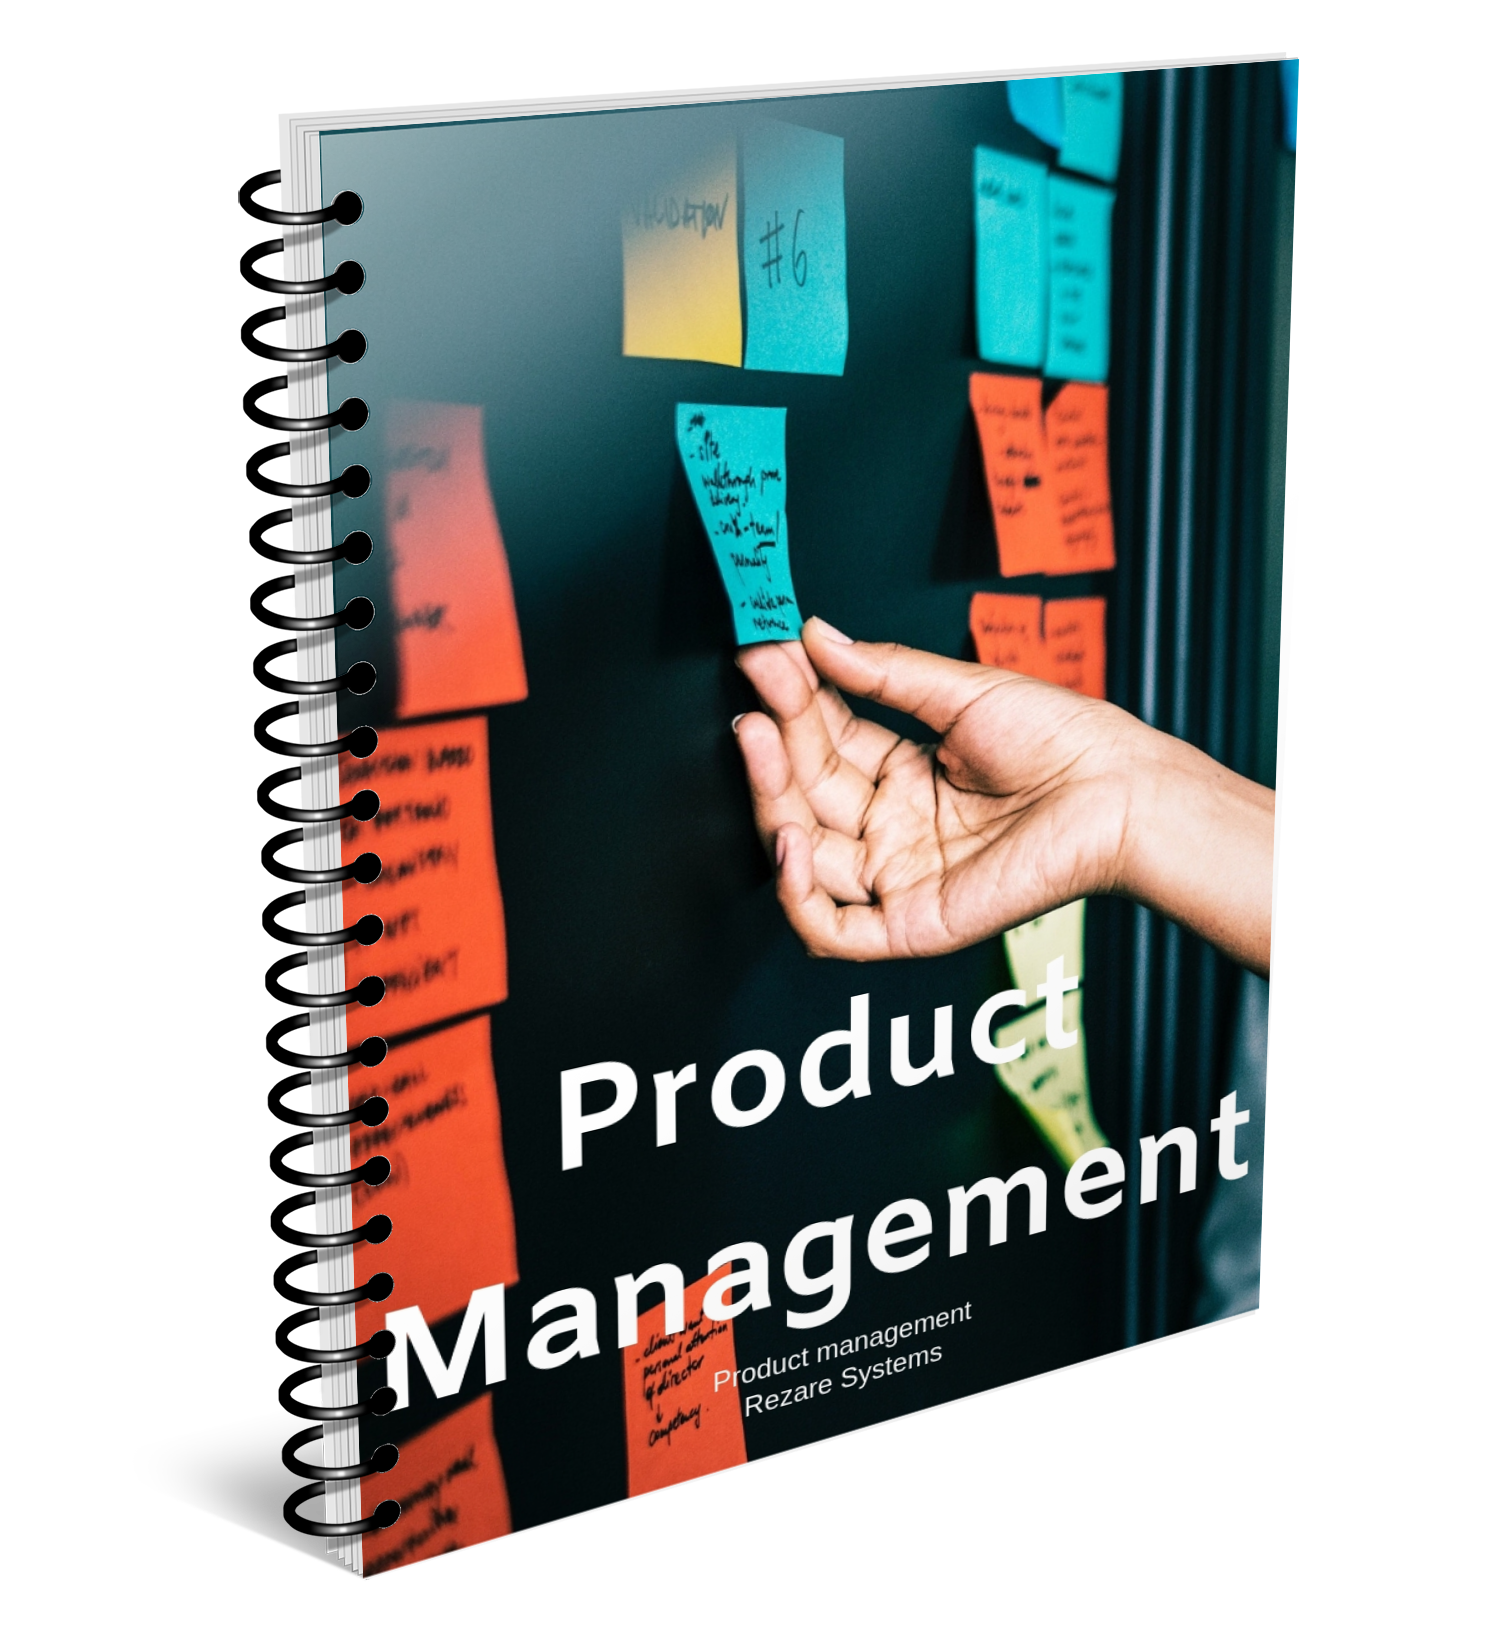 Product Management Landing Page Cover